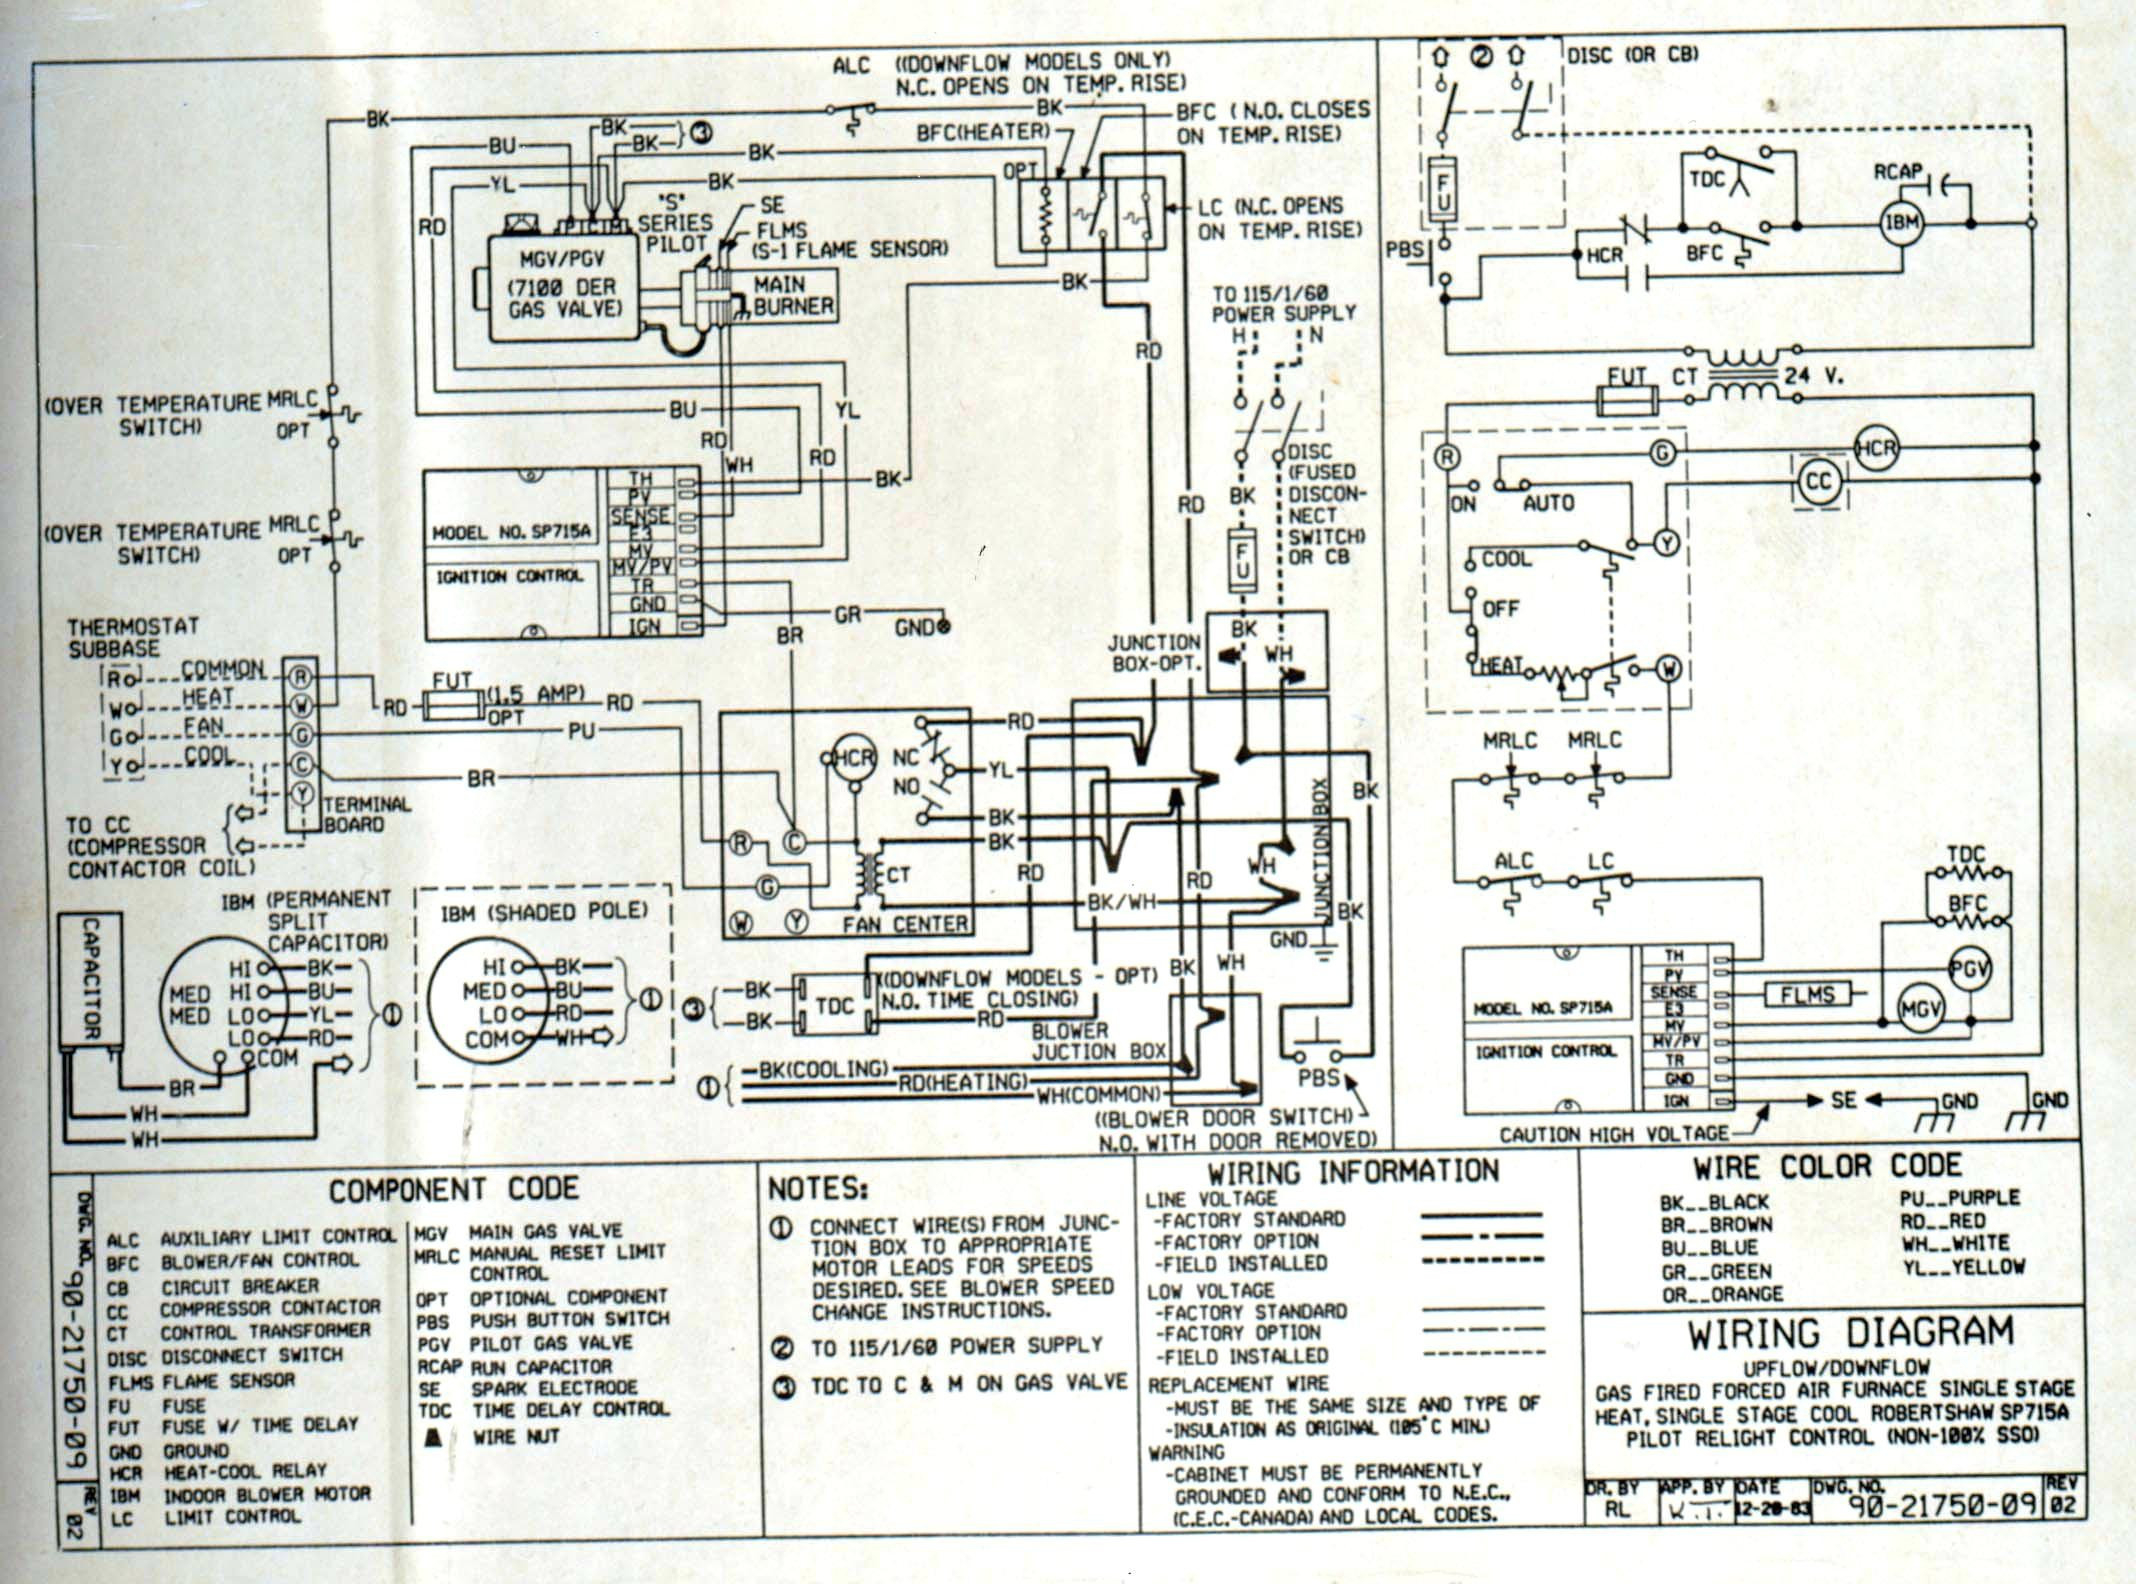 Enjoyable American Standard Furnace Wiring Diagram Gallery Wiring Diagram Sample Wiring 101 Akebretraxxcnl